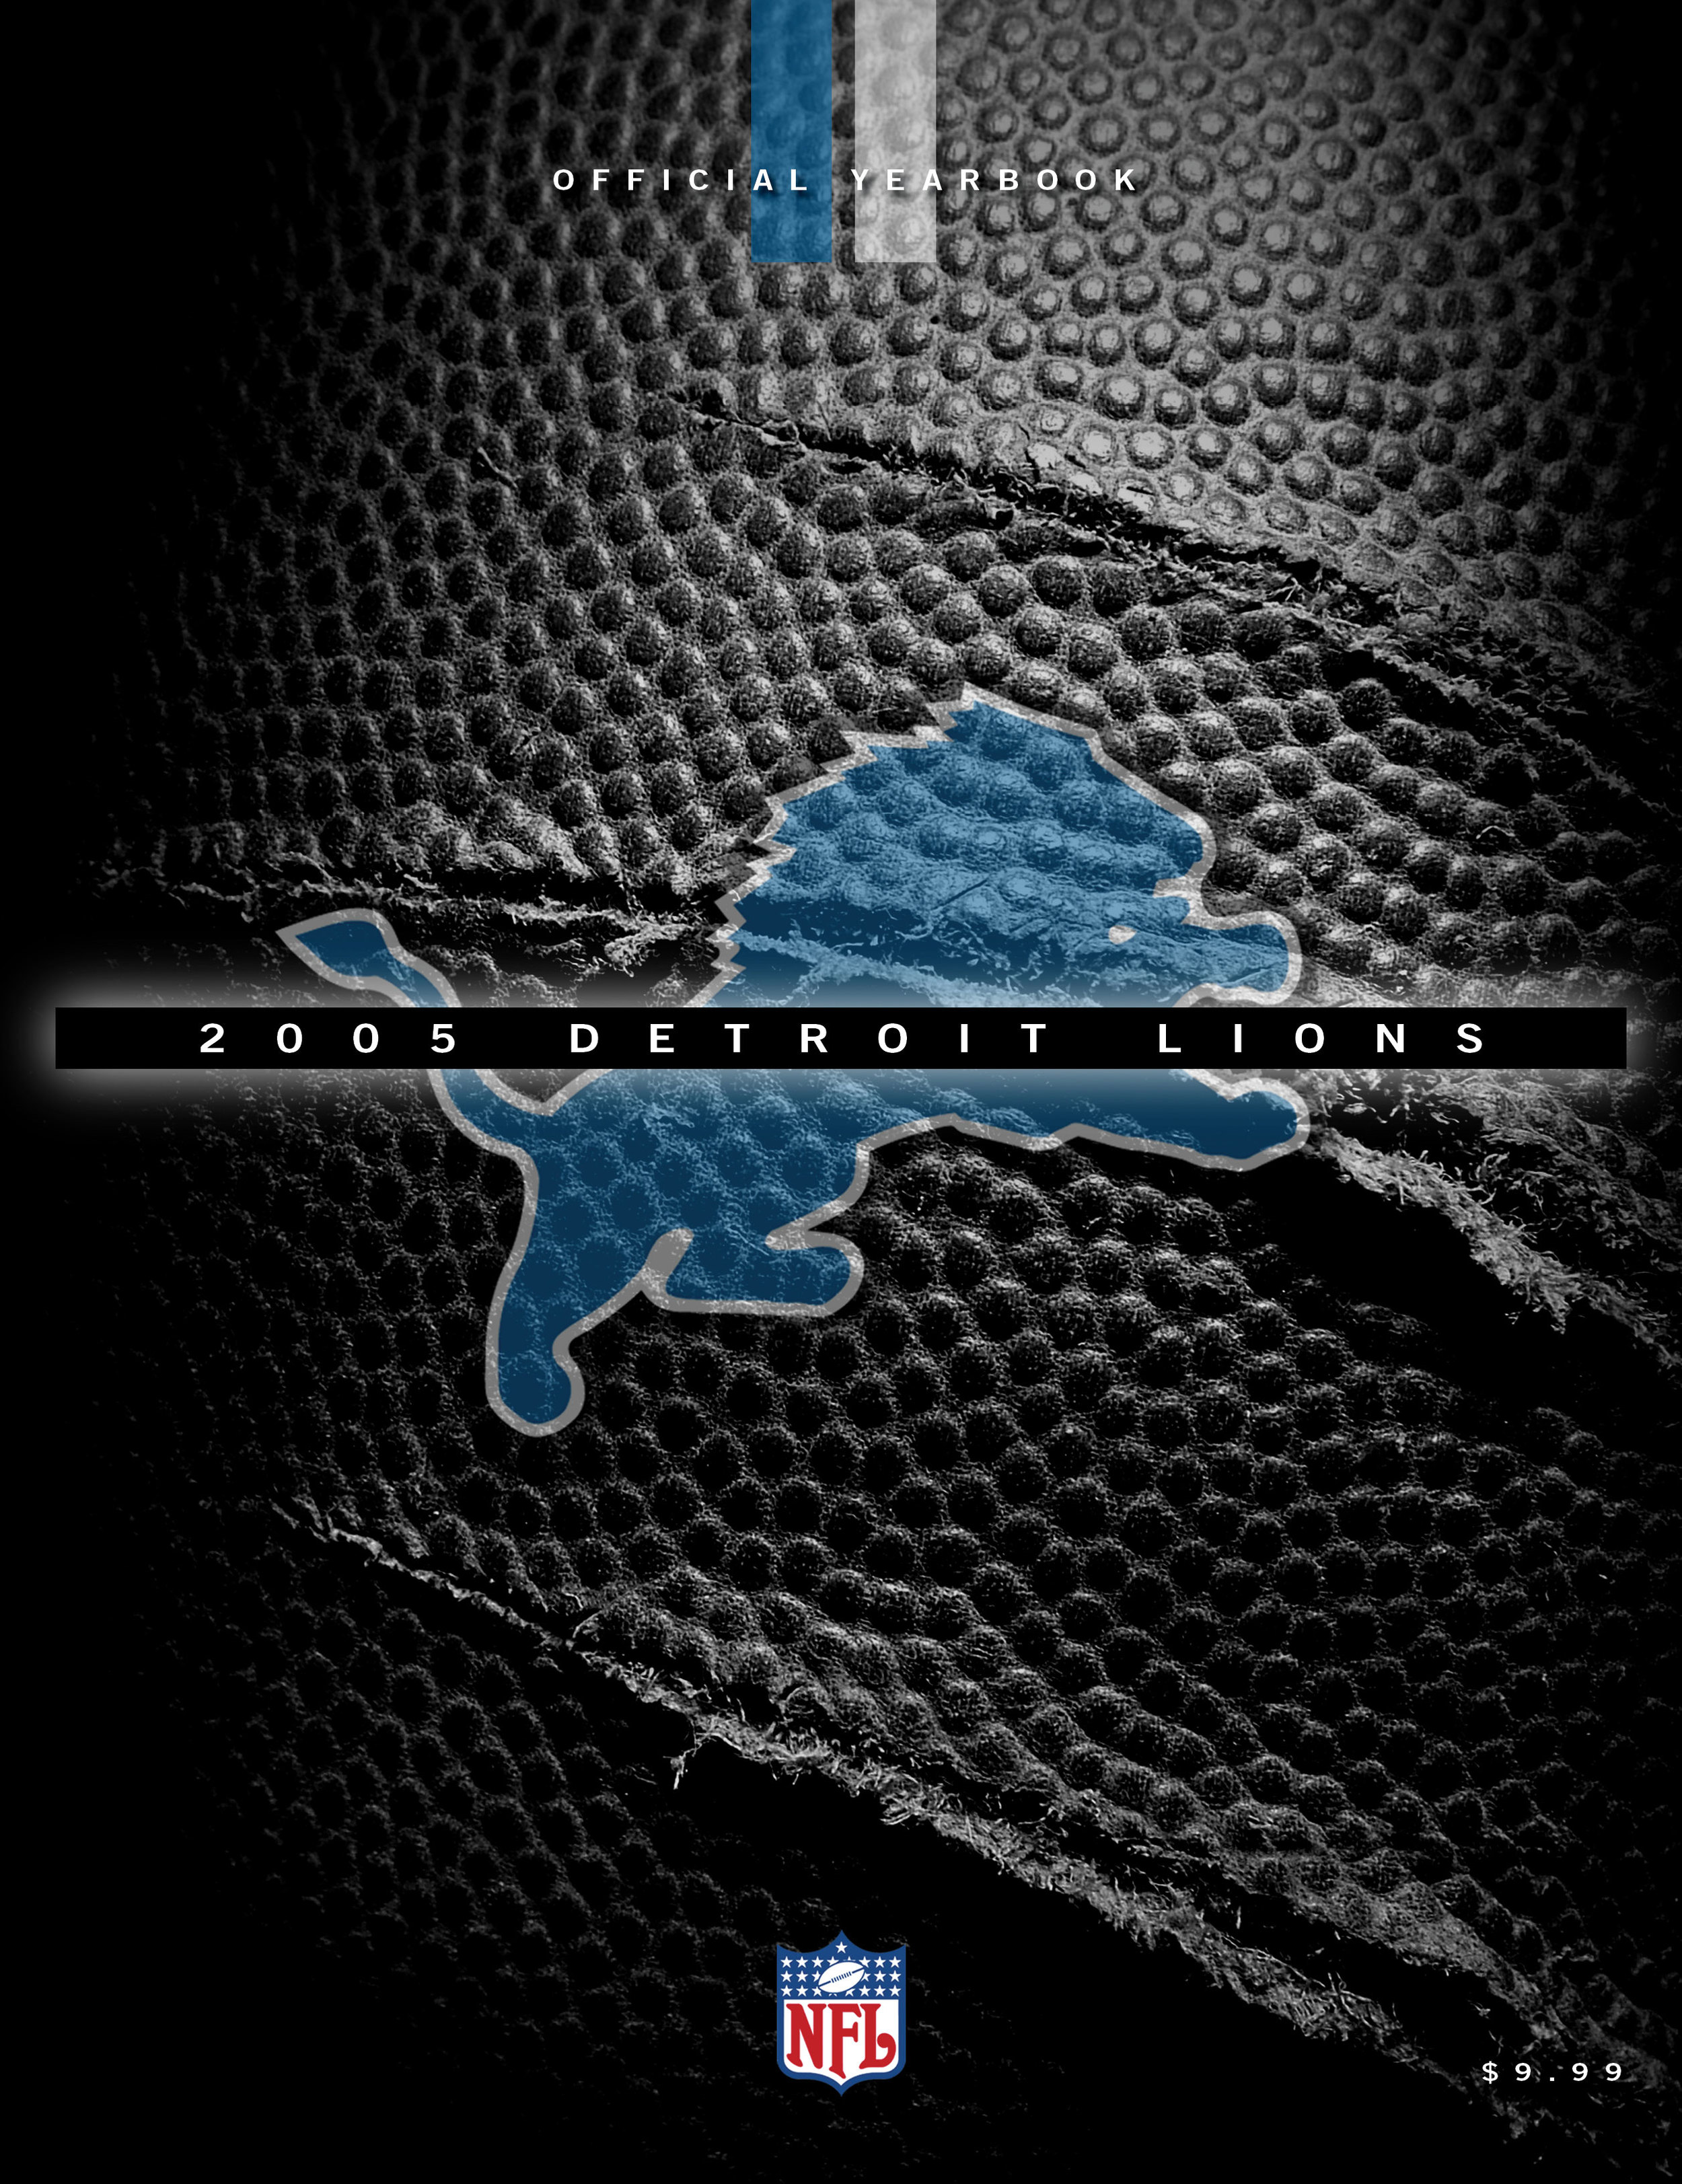 lions05_cover.jpg